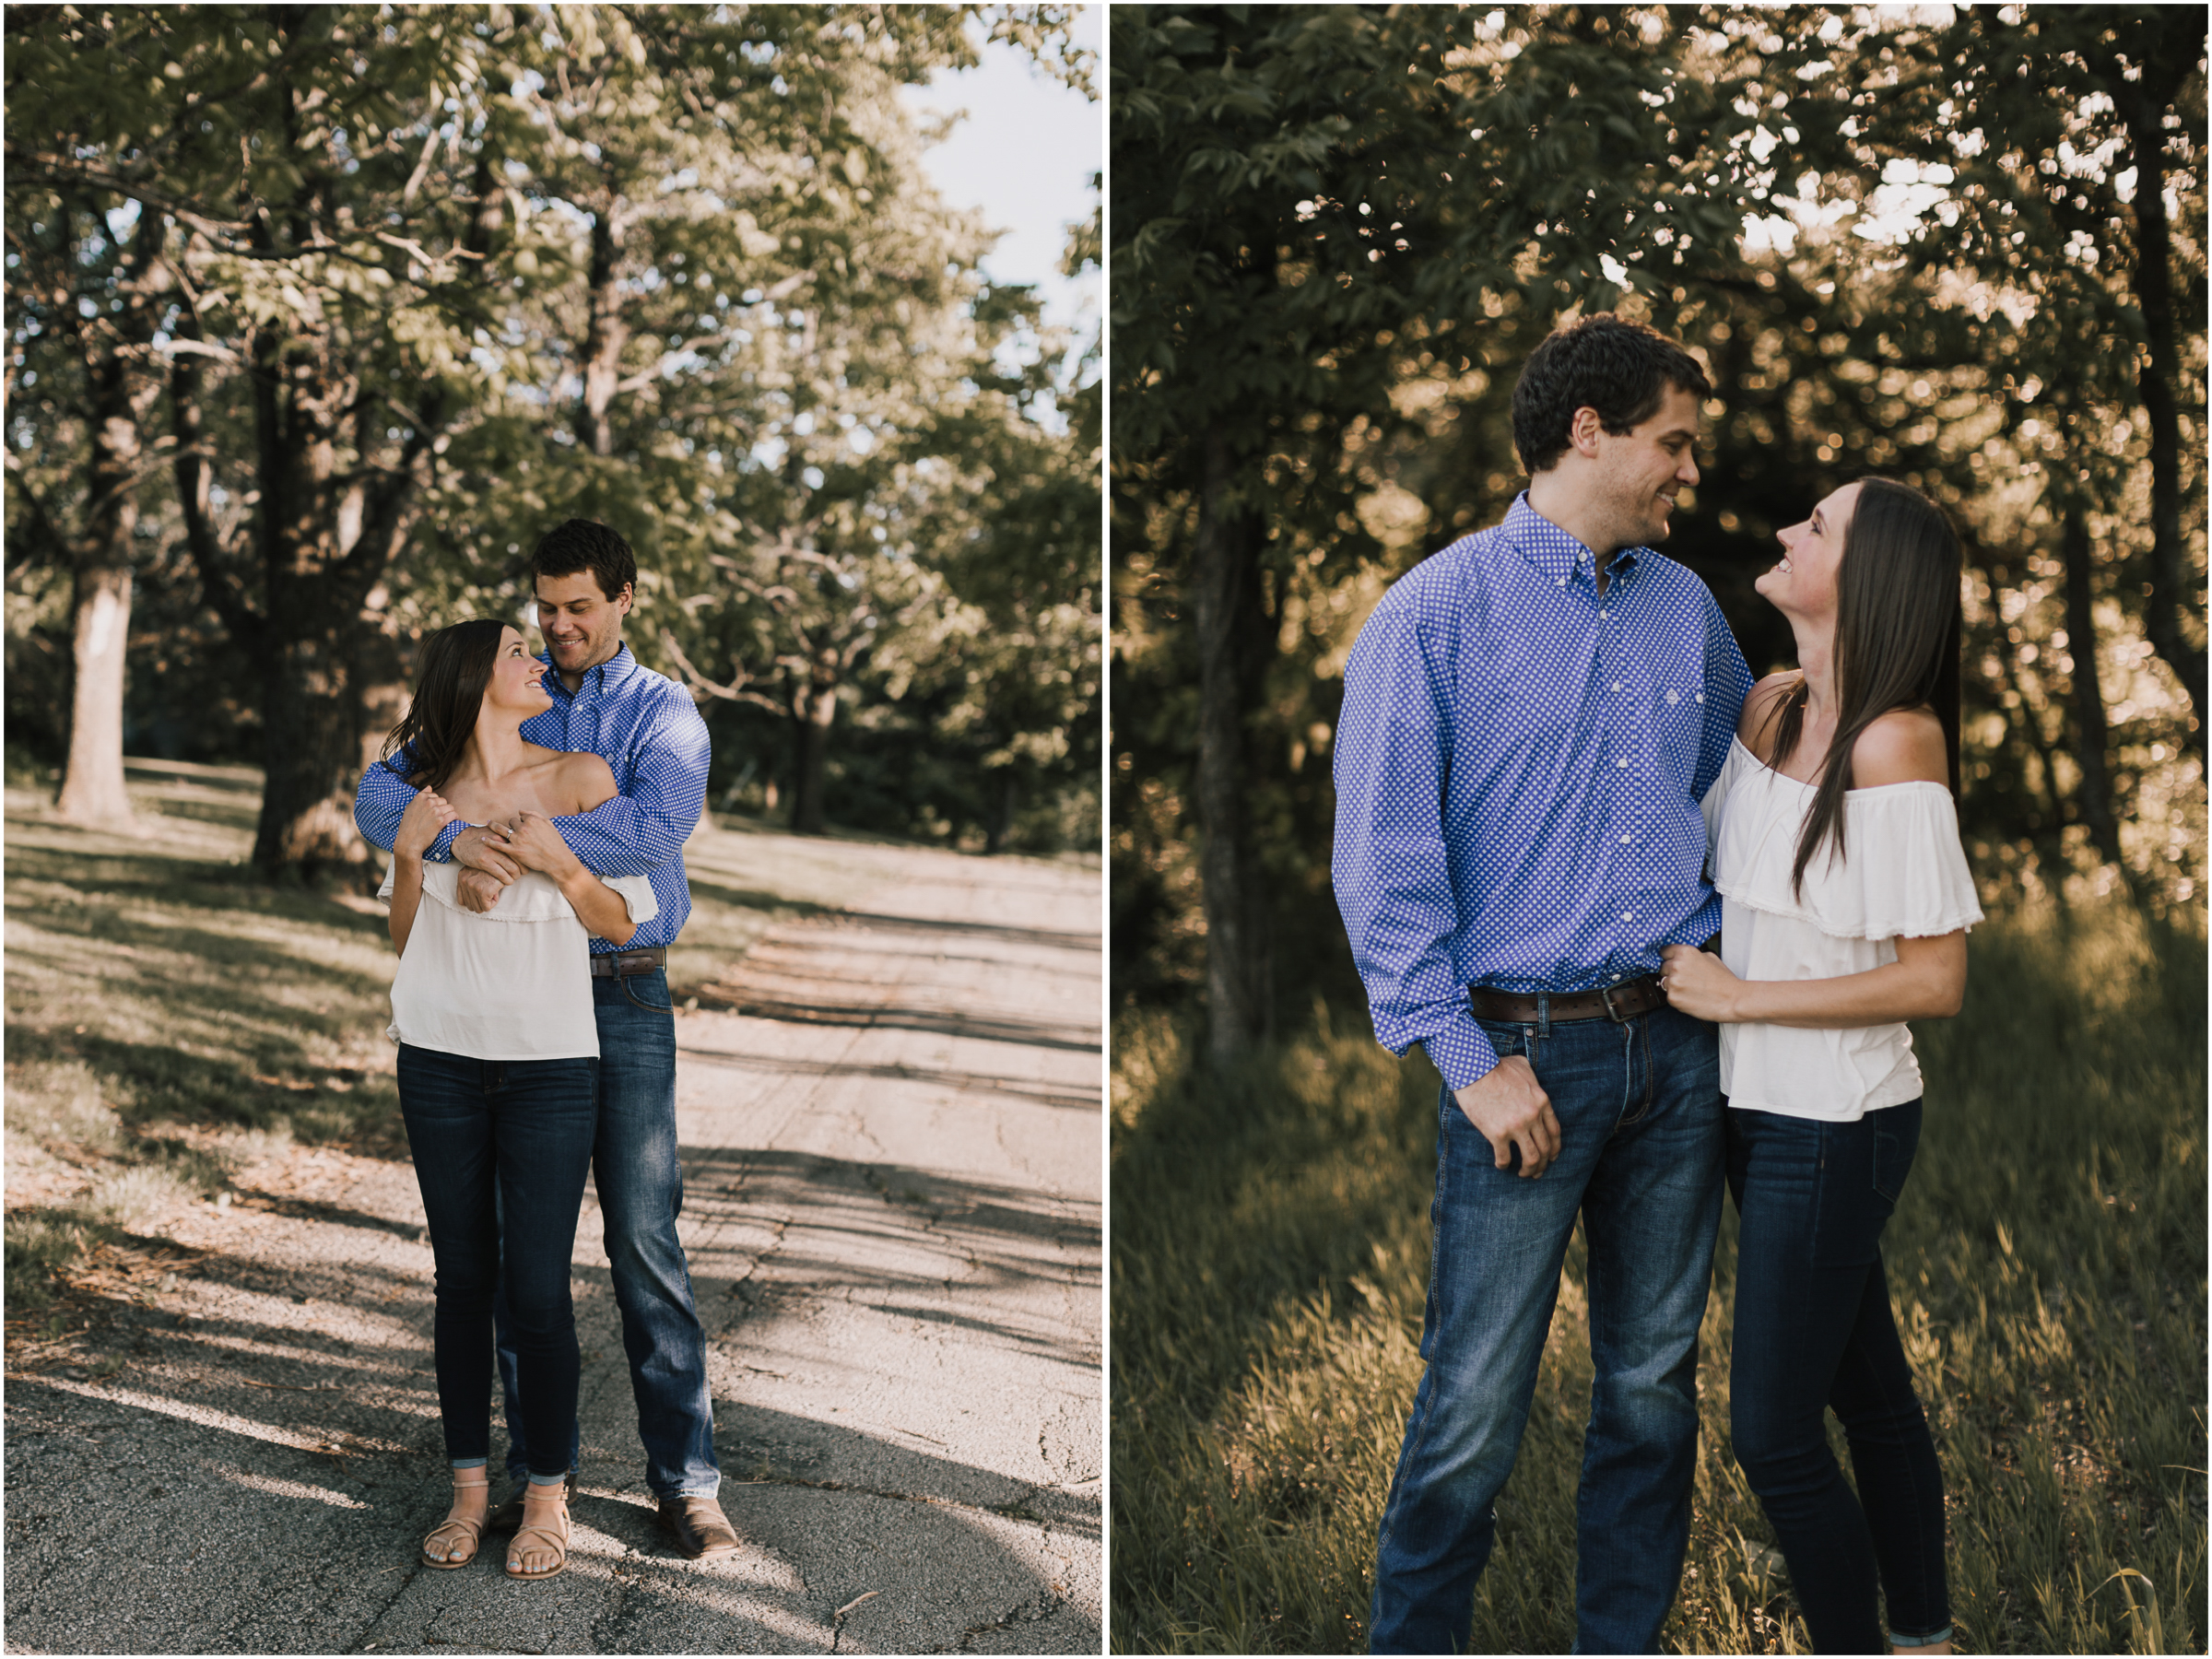 alyssa barletter photography shawnee mission park summer rustic done right engagement session-3.jpg